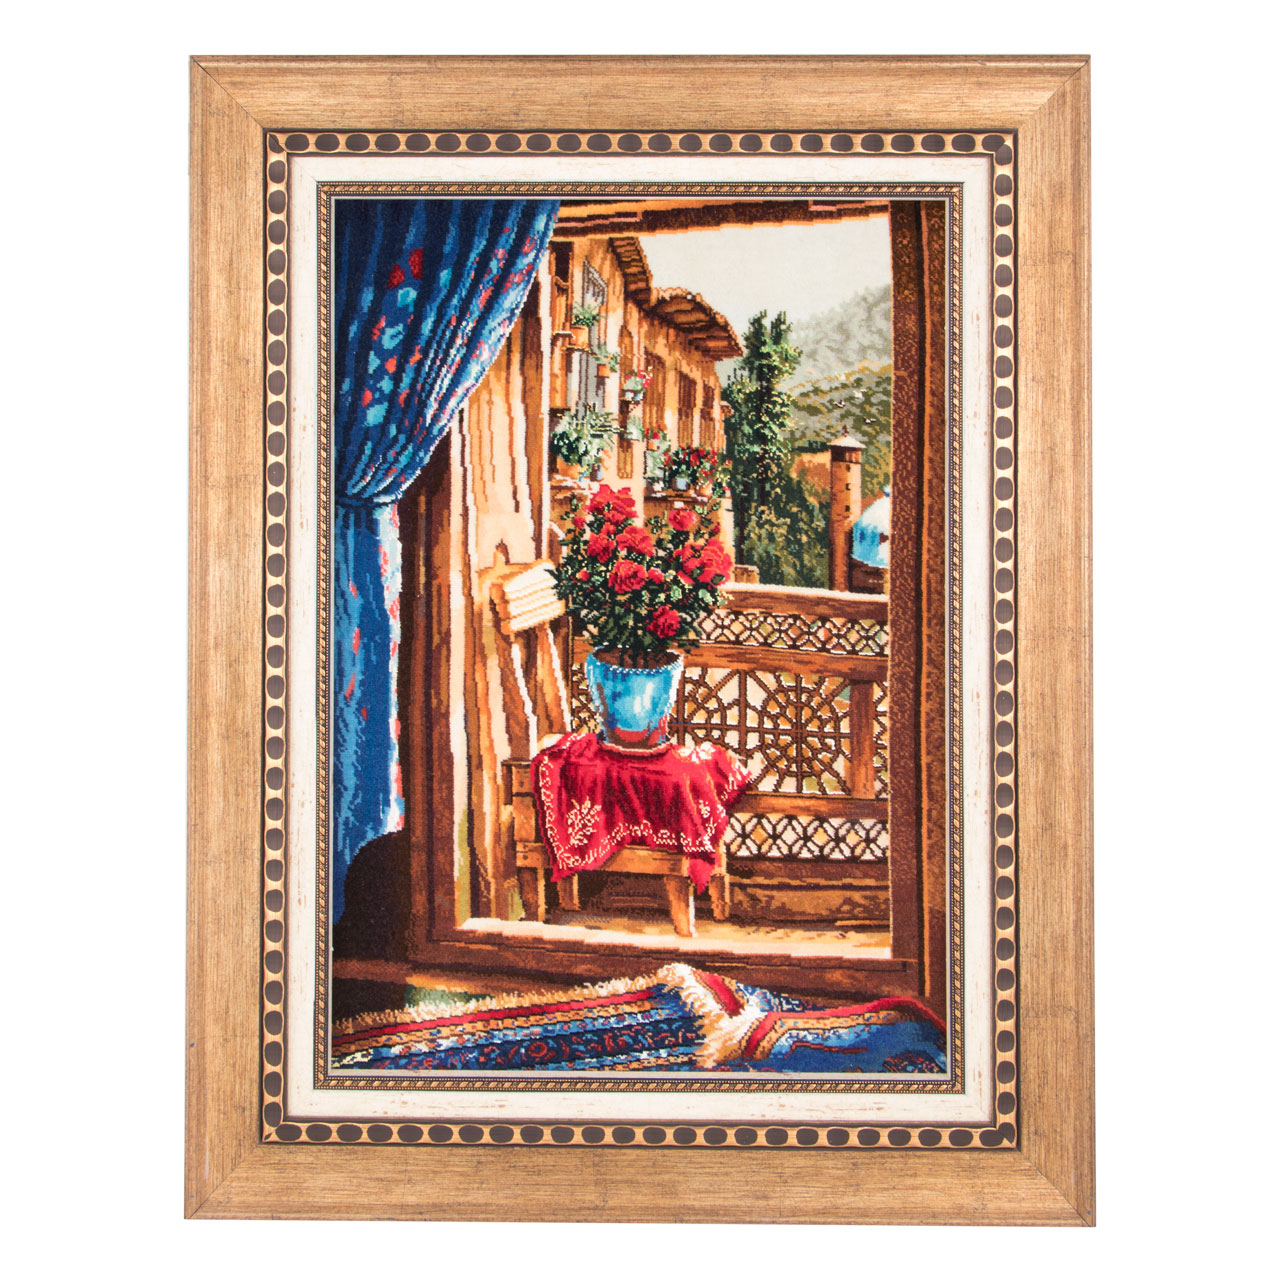 Handmade Persian carpet tableau, code 901607